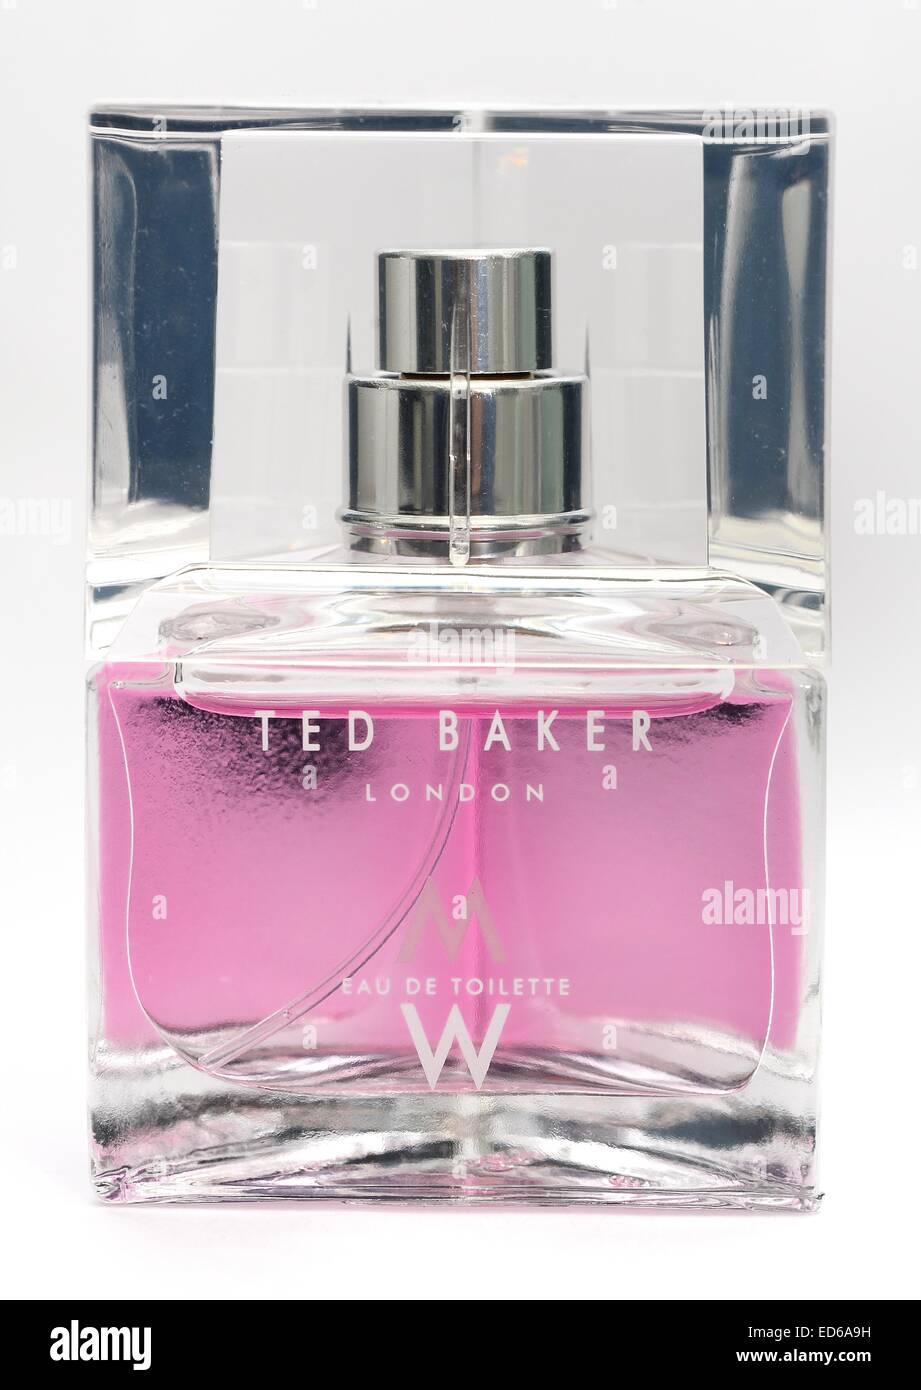 Ted Baker London Imágenes De Stock & Ted Baker London Fotos De Stock ...